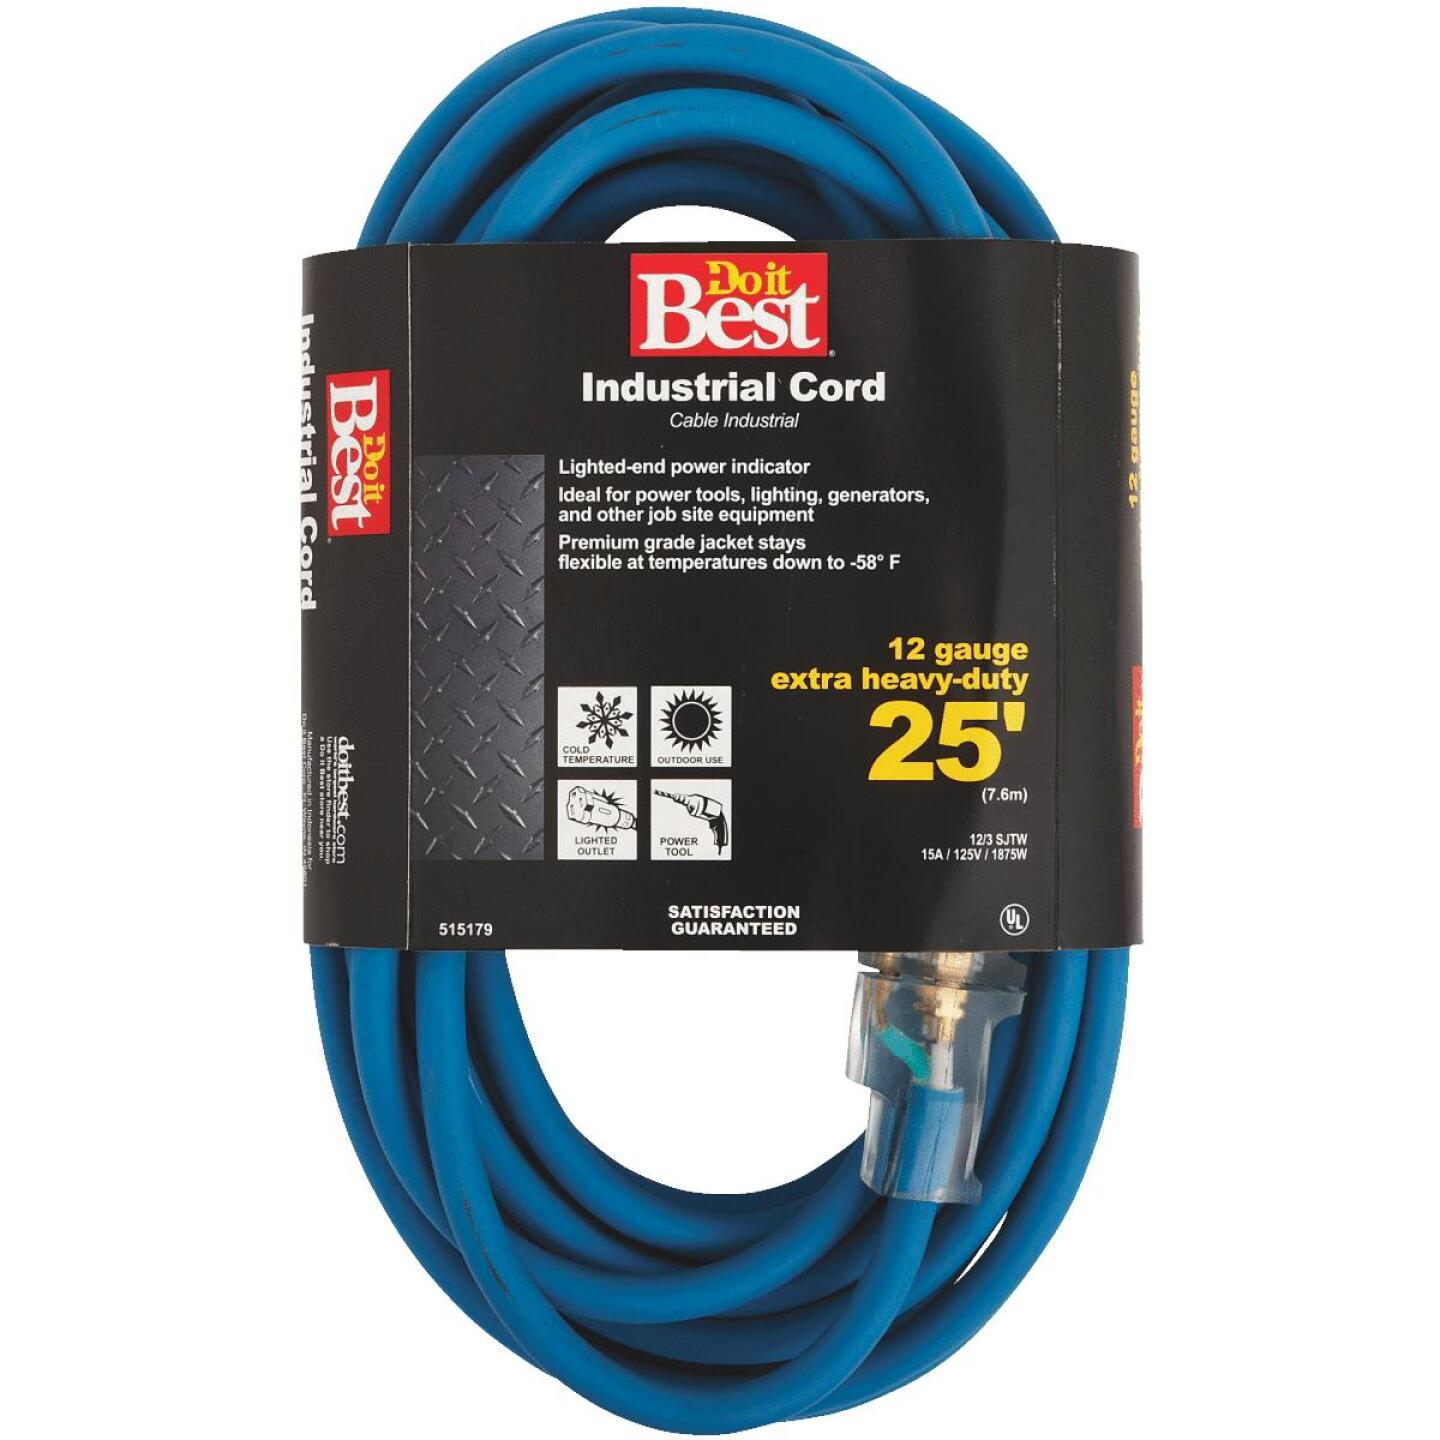 Do it Best 25 Ft. 12/3 Industrial Outdoor Extension Cord Image 1